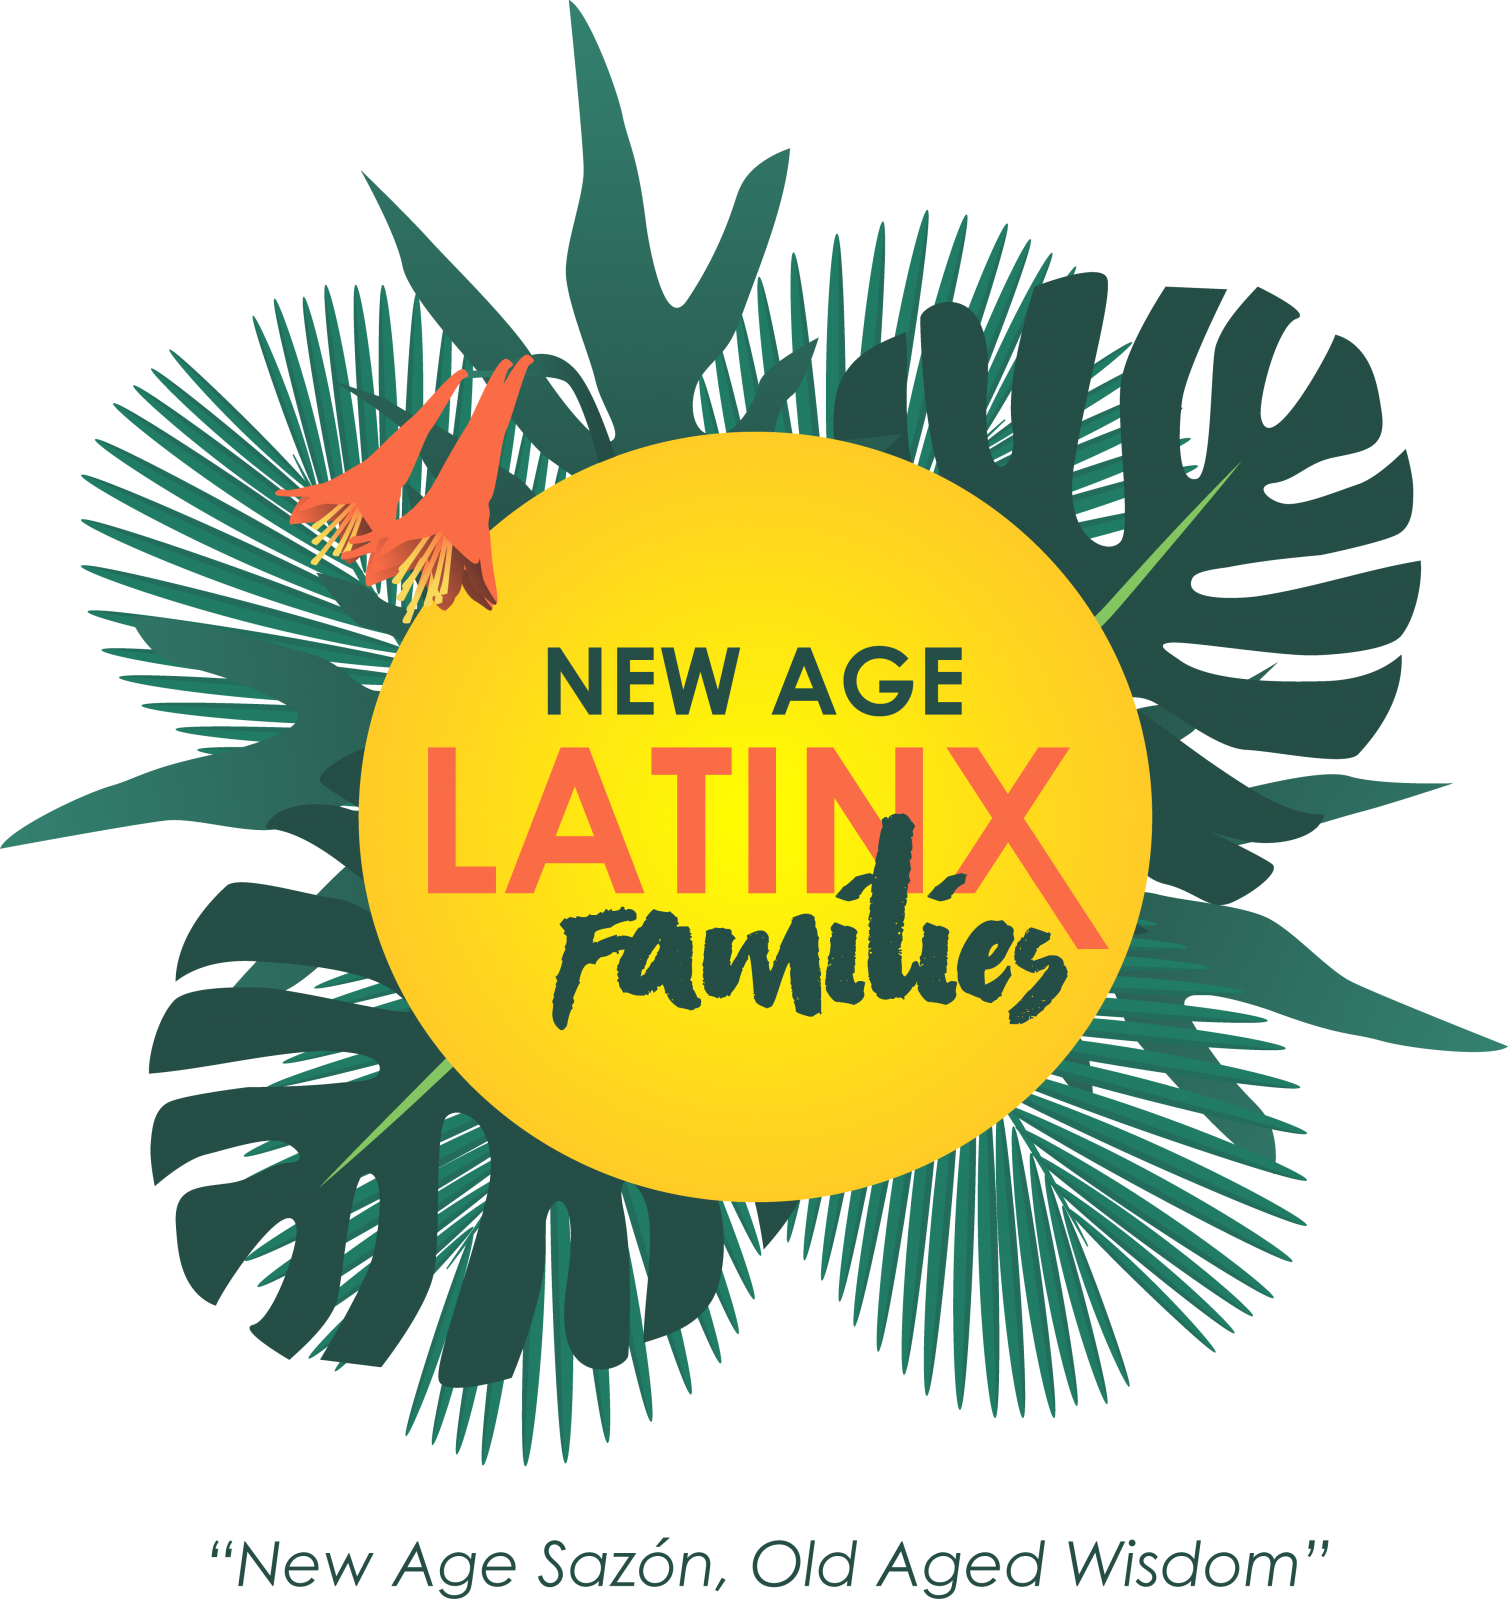 TK Consulting and Design LLC - Latinx Families - Branding